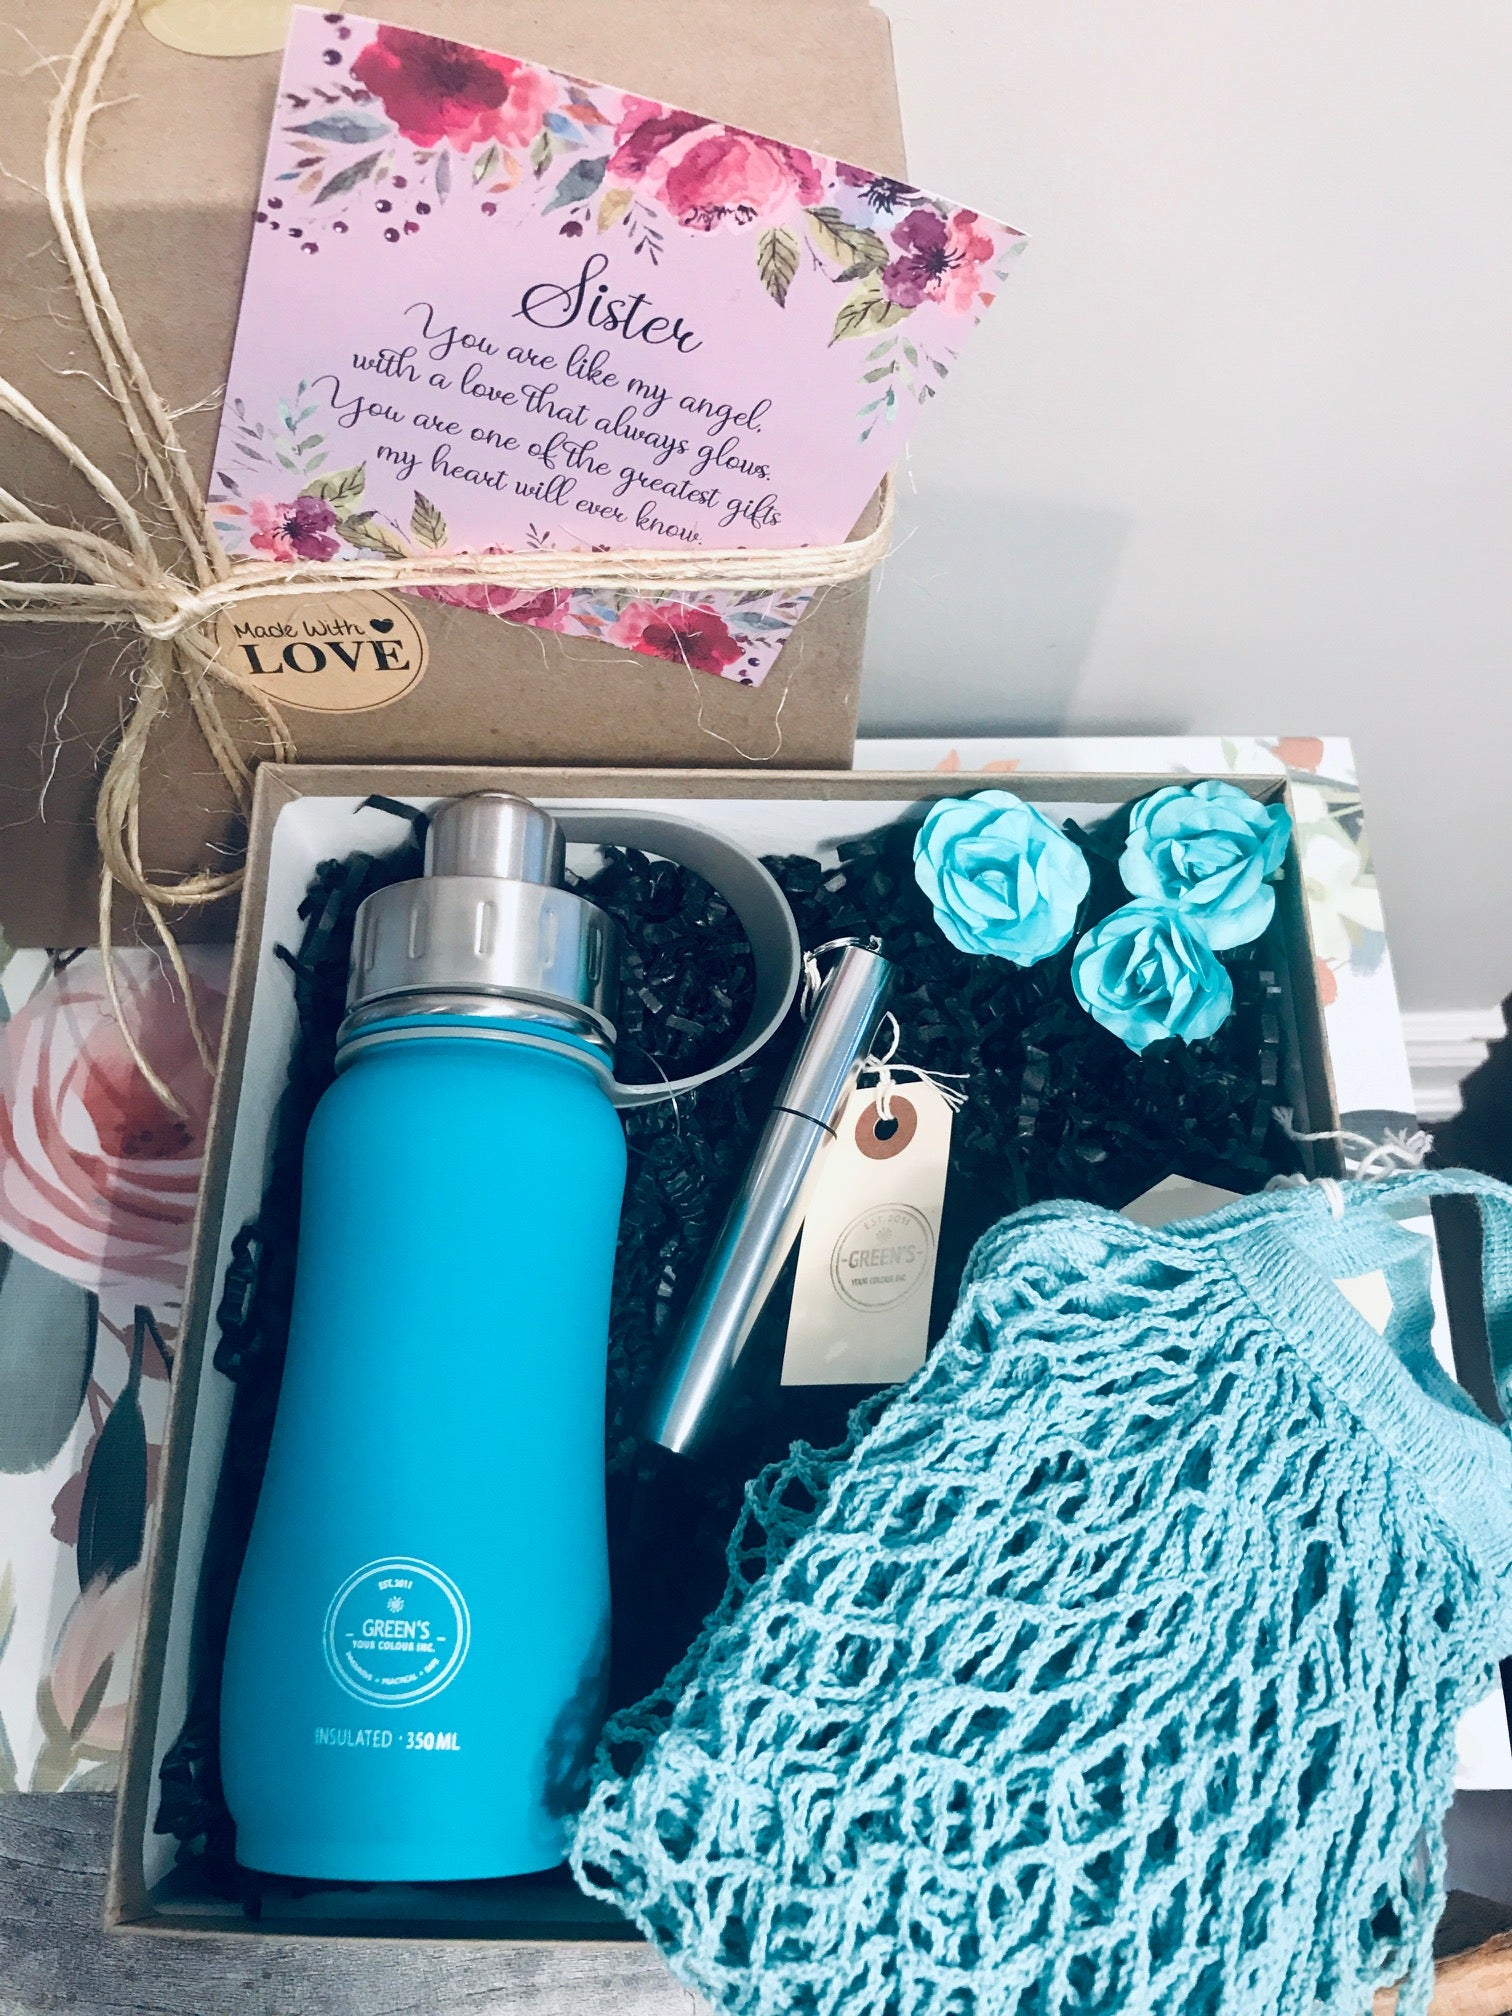 SUSTAINABLE GIFT KIT- 350ML 'JAMMIN' JADE' BOTTLE, SILVER TELESCOPIC STRAW/BRUSH, REUSABLE STRETCHY BAG